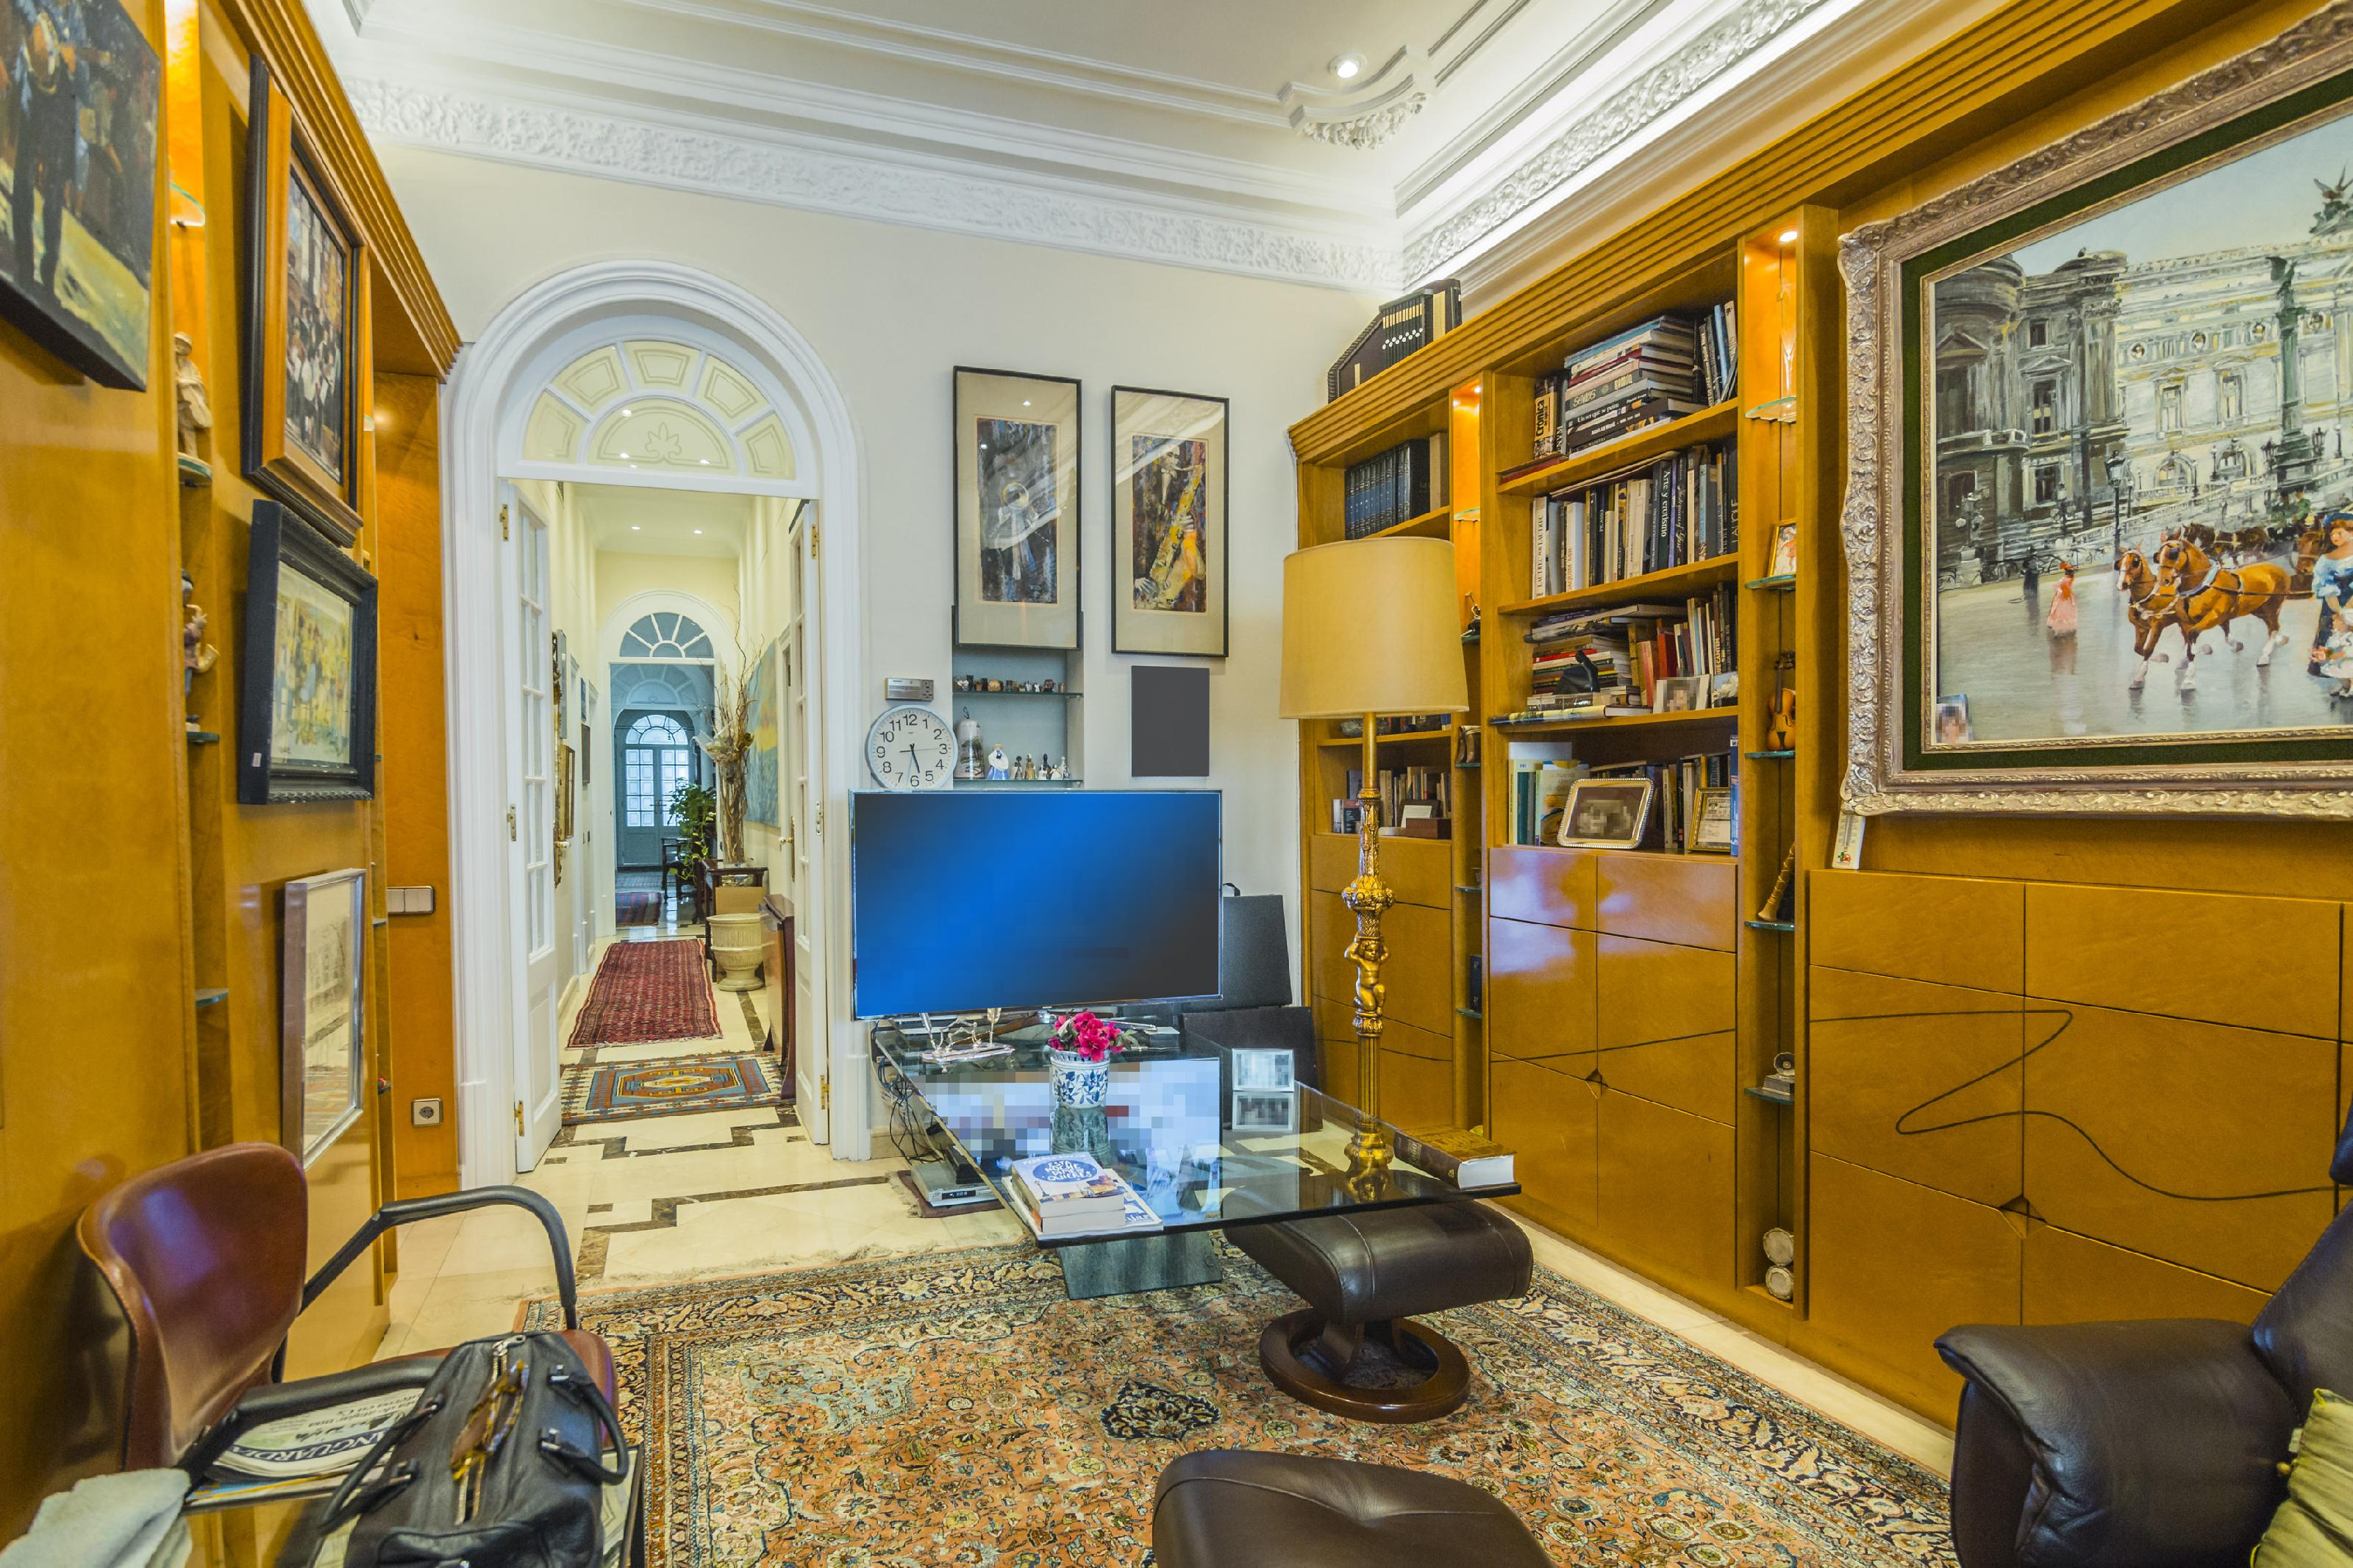 87800 Apartment for sale in Eixample, Dreta Eixample 29